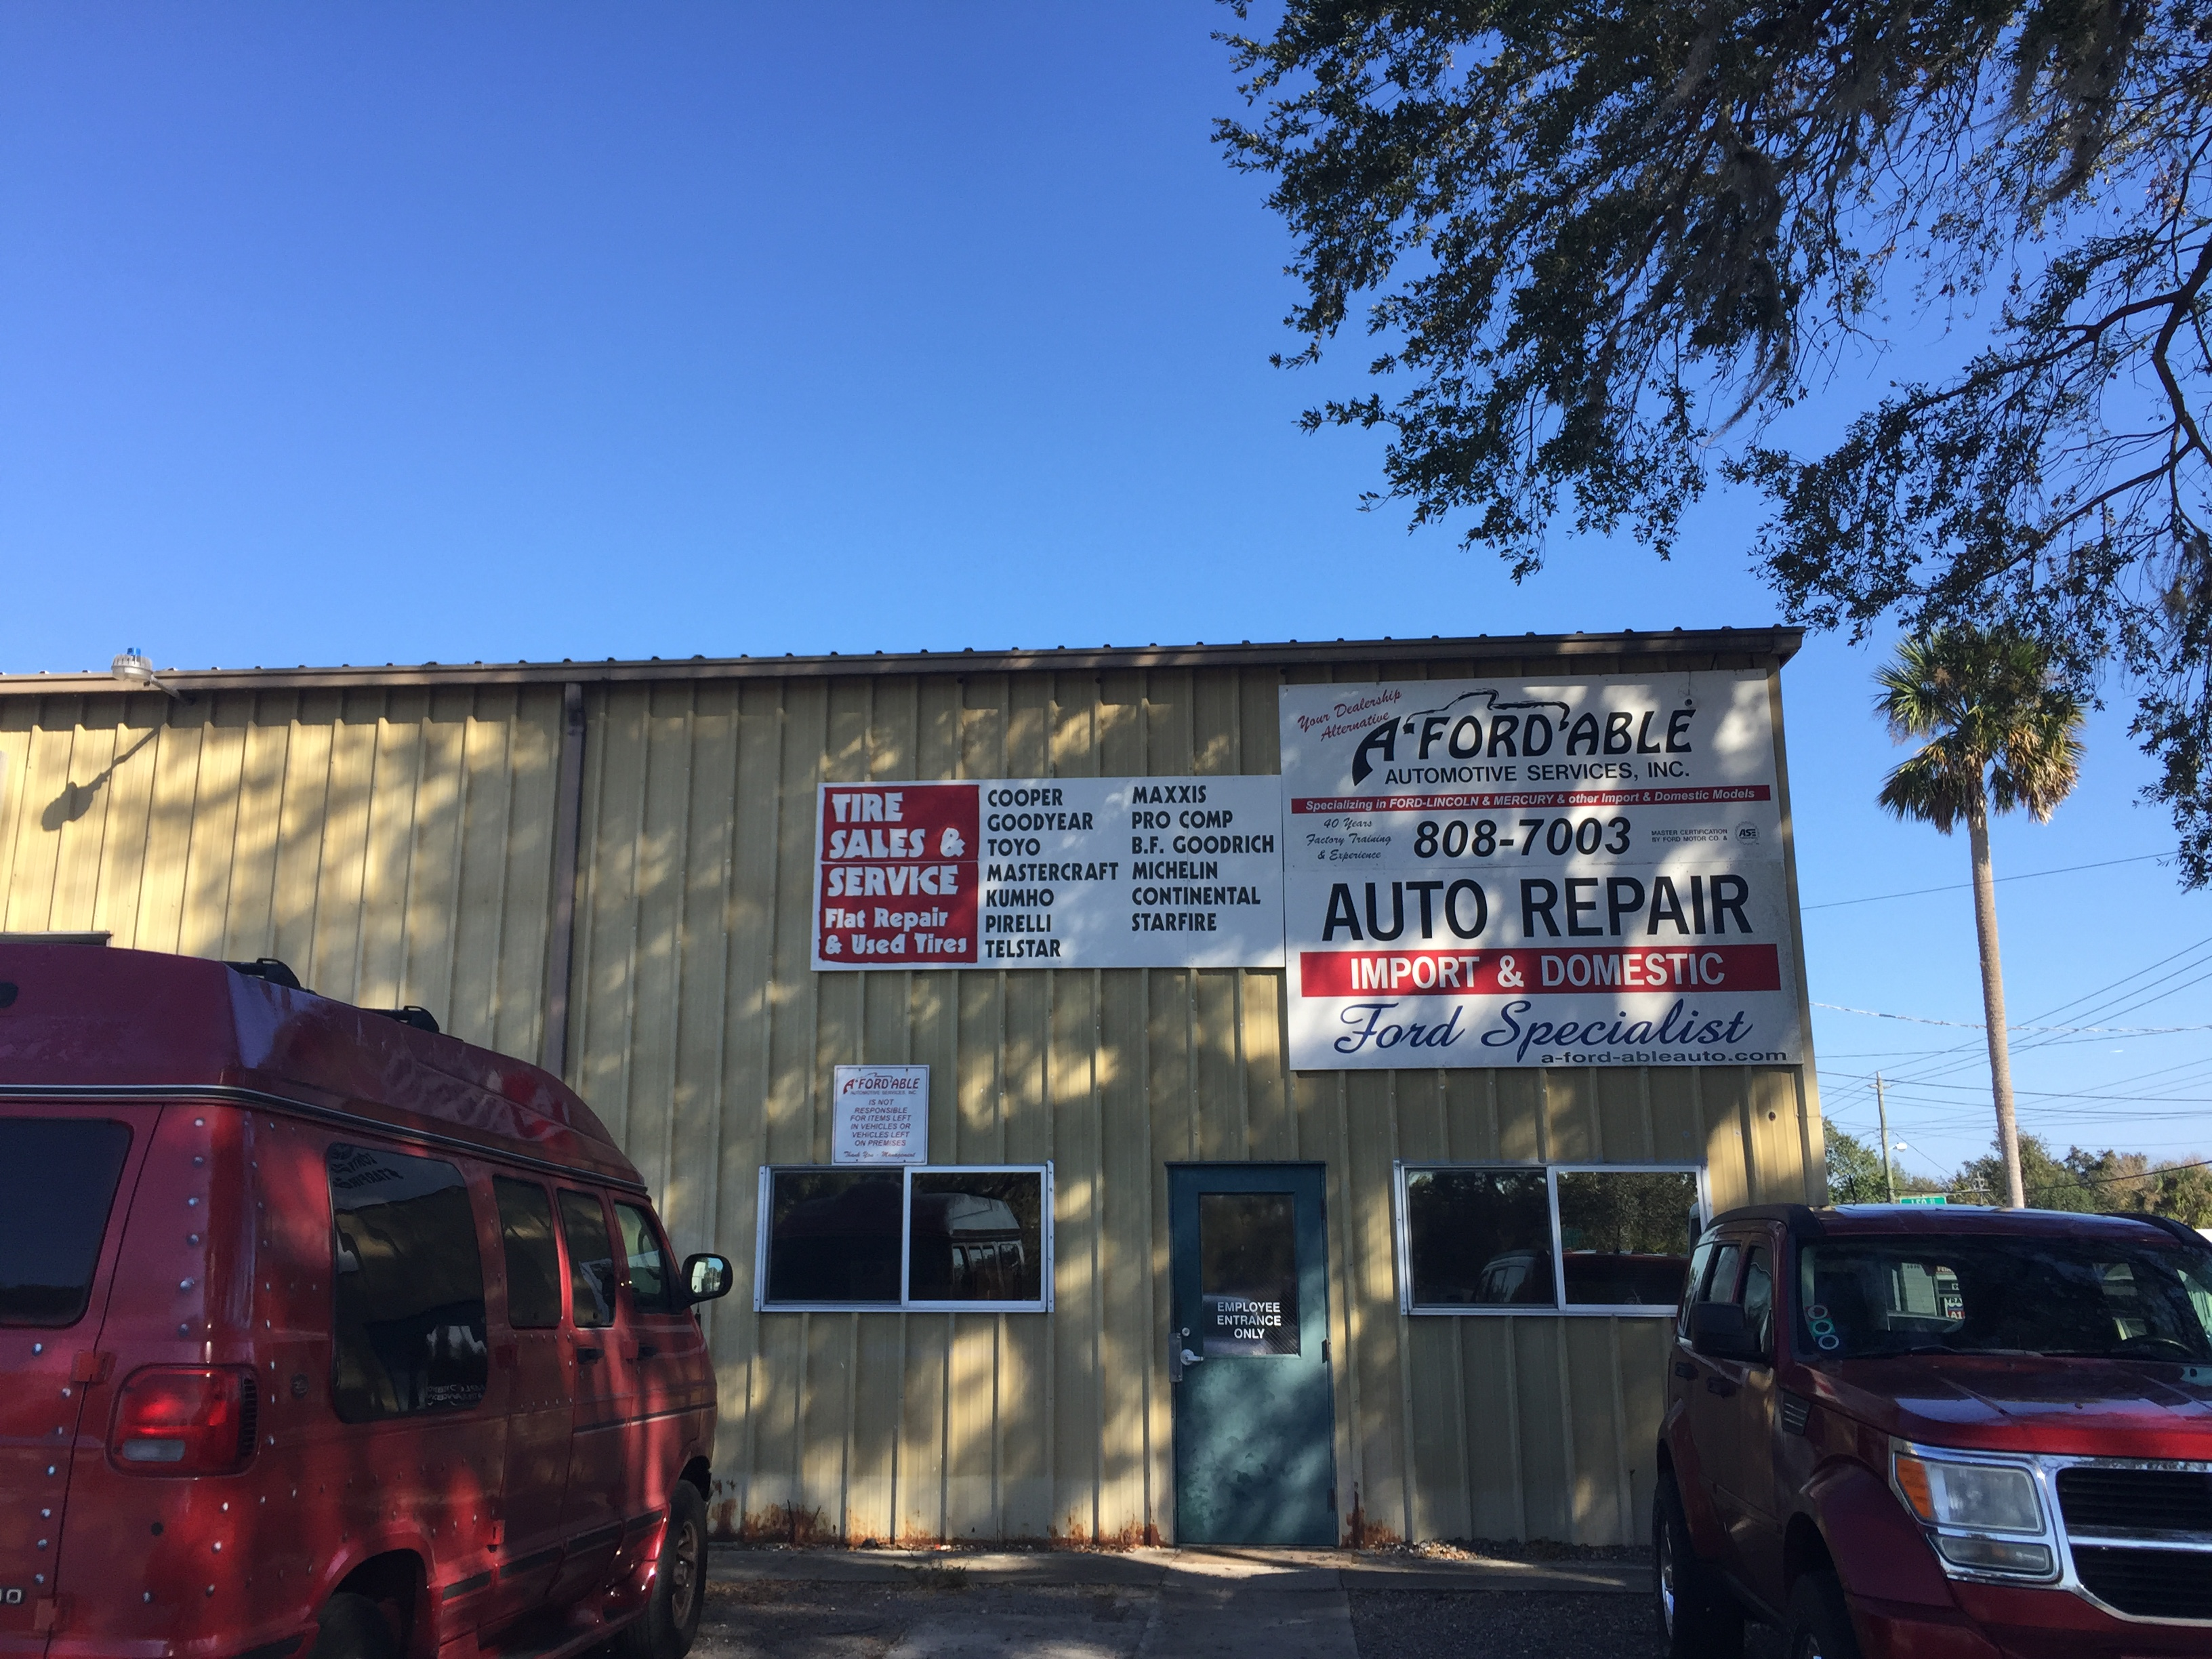 A-Ford-Able Auto Repair & Tire Service